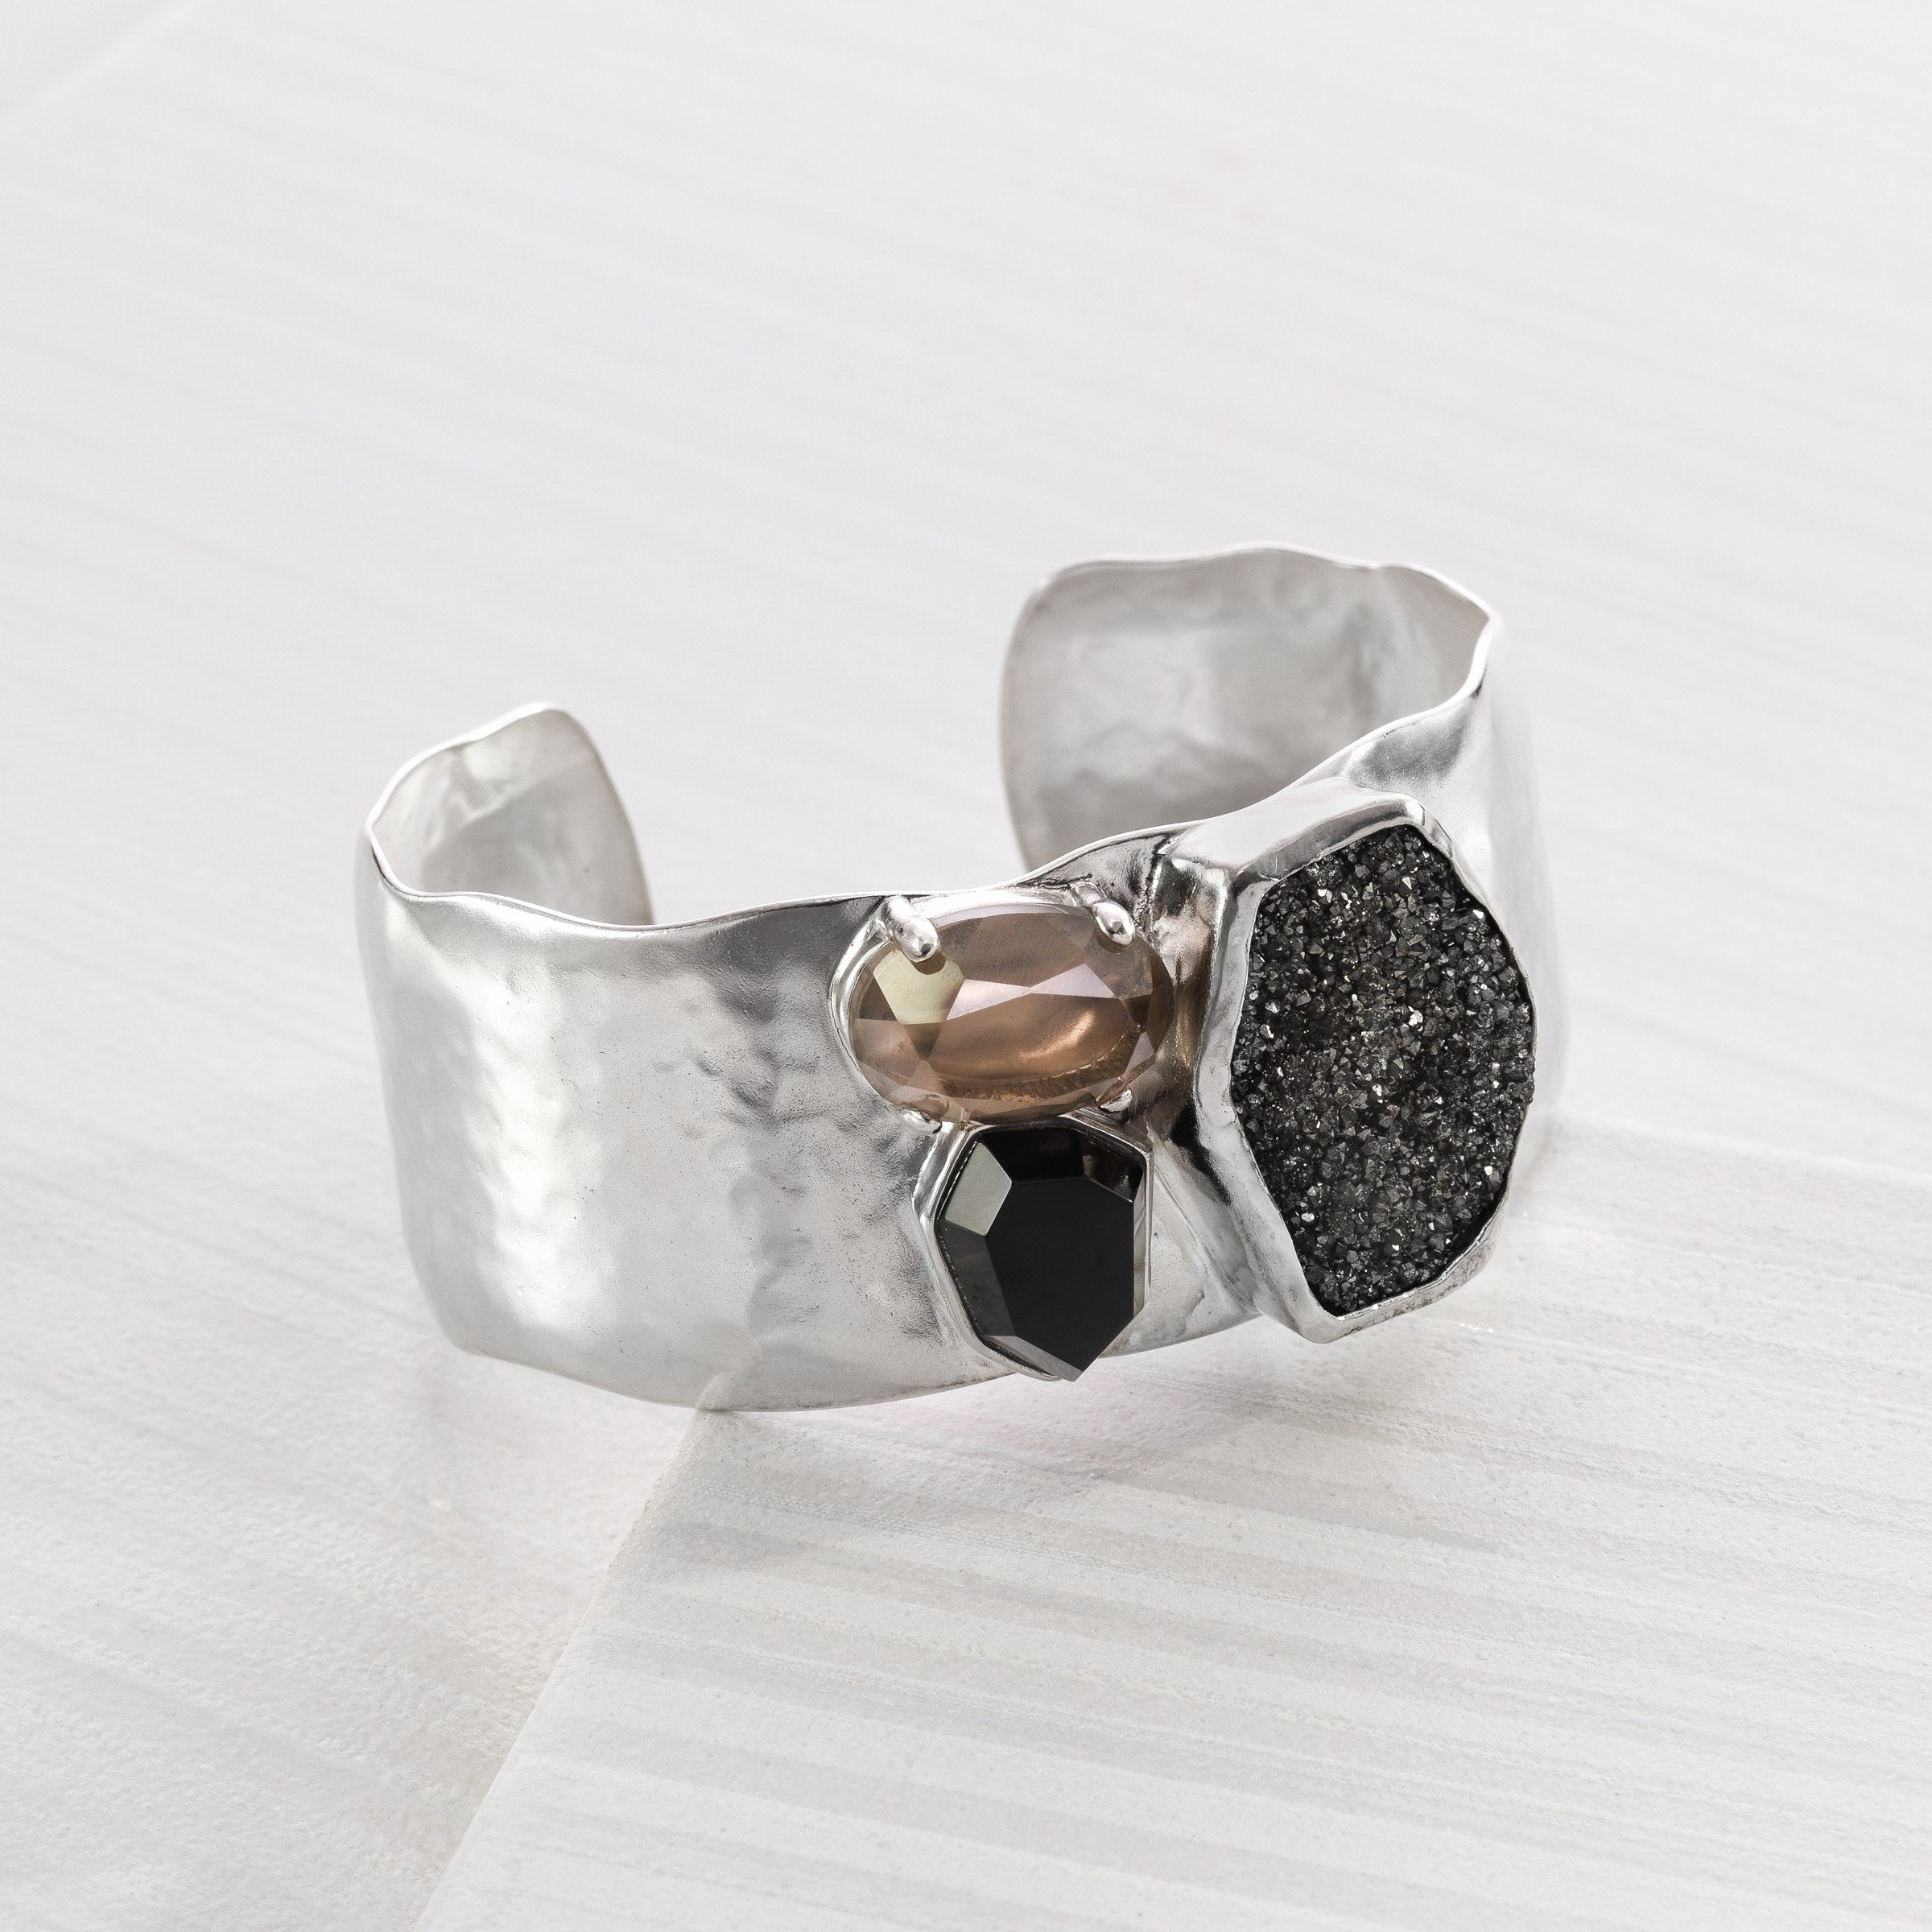 Silpada 'Crystal Cave' Sterling Silver, Agate, Crystal, Druzy, and Quartz Cuff 6.75'' by Silpada (Image #2)